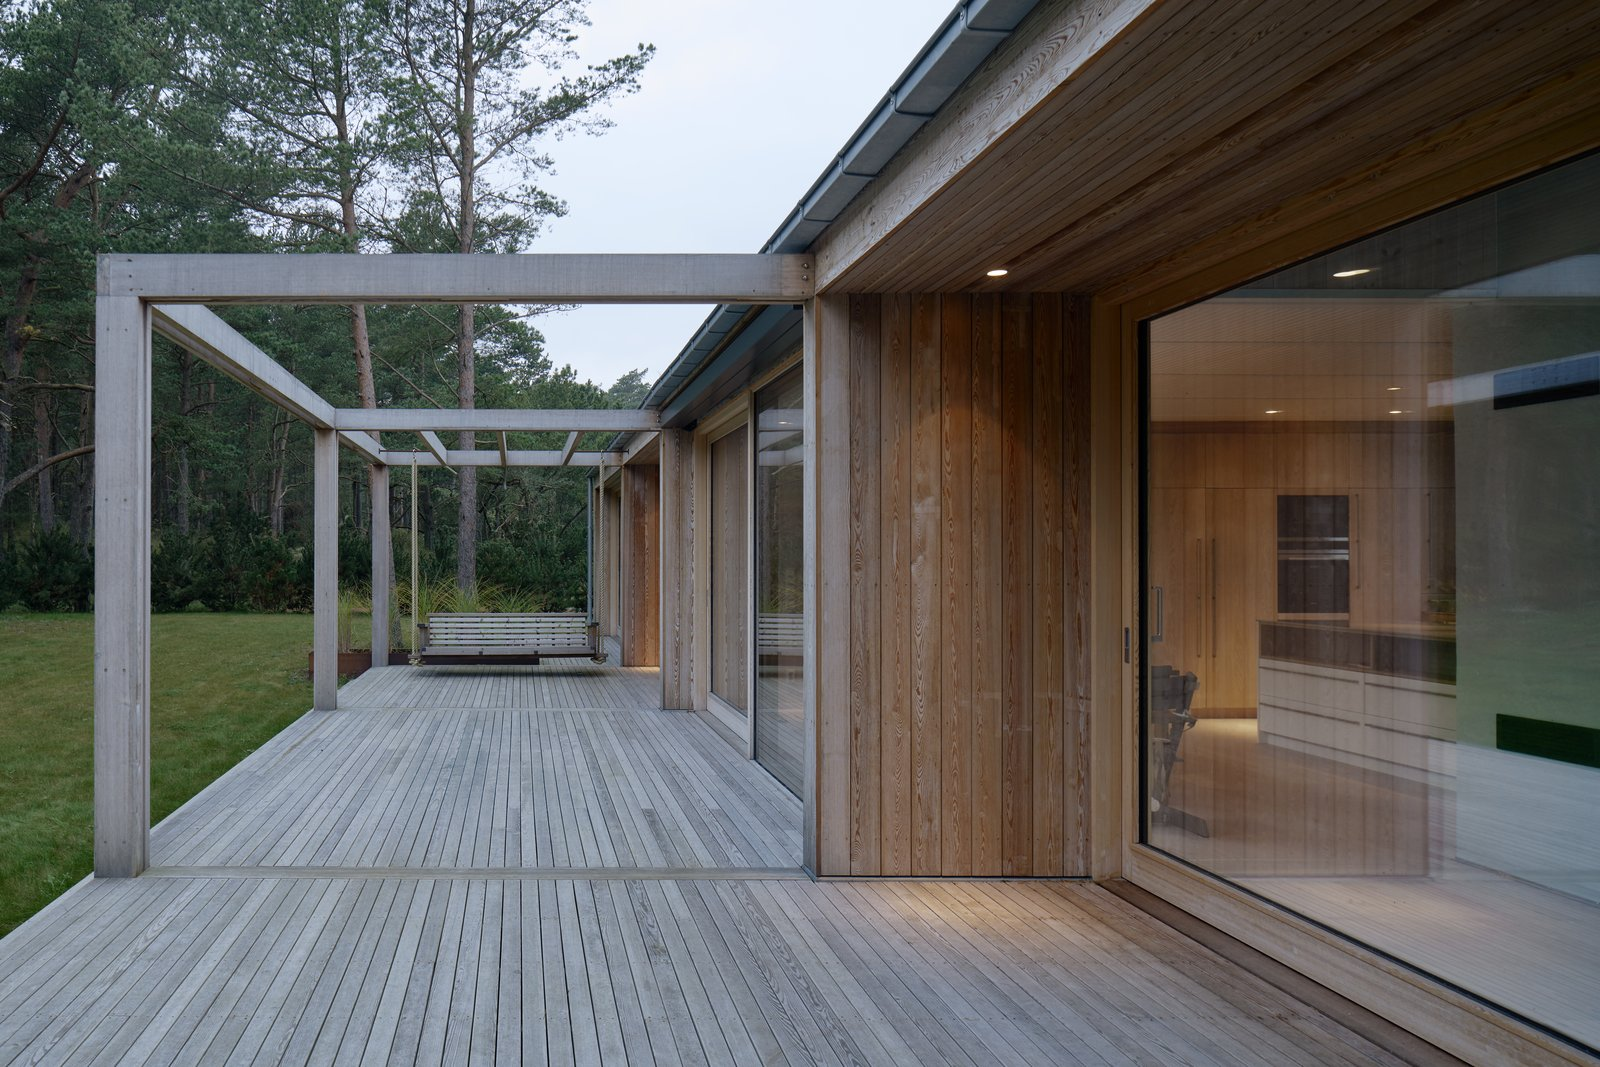 The deck and pergola appear to be a natural extension of the home.